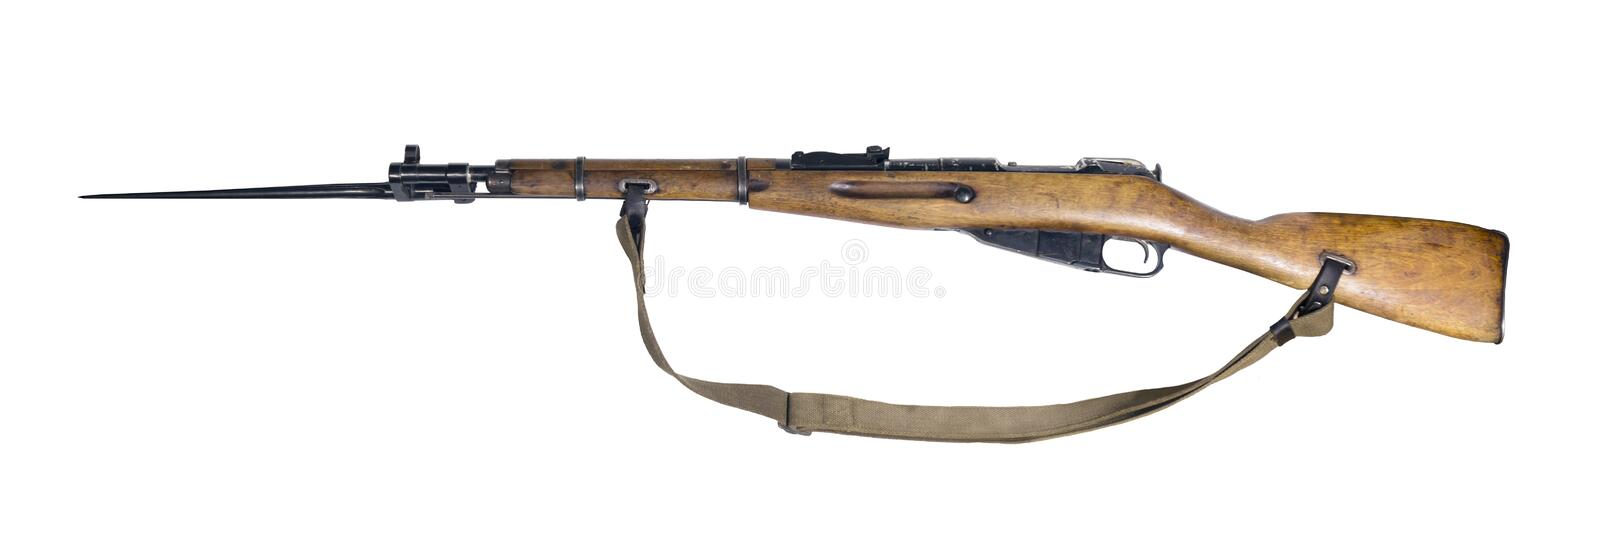 Vintage military rifle on white background. Vintage military rifle with bayonet in its open position, isolated royalty free stock photography